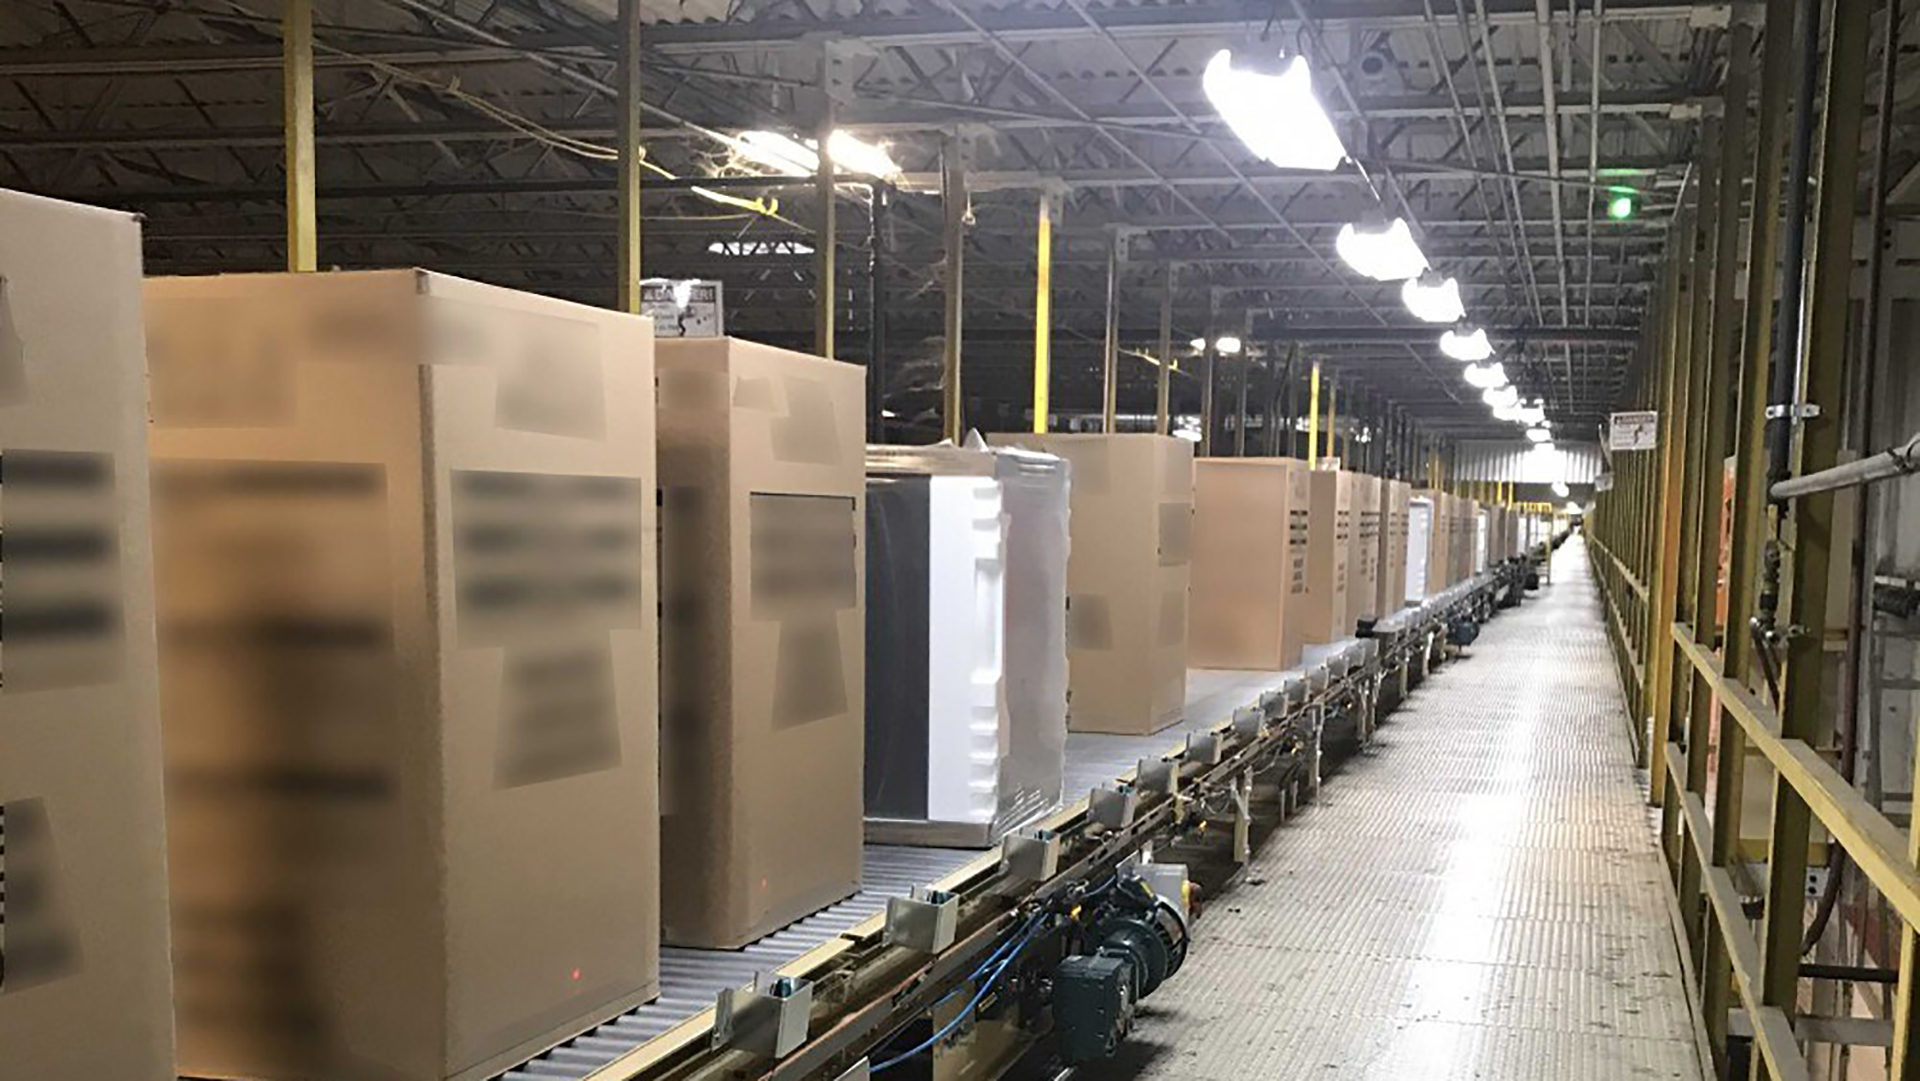 conveyor belt with boxes on it